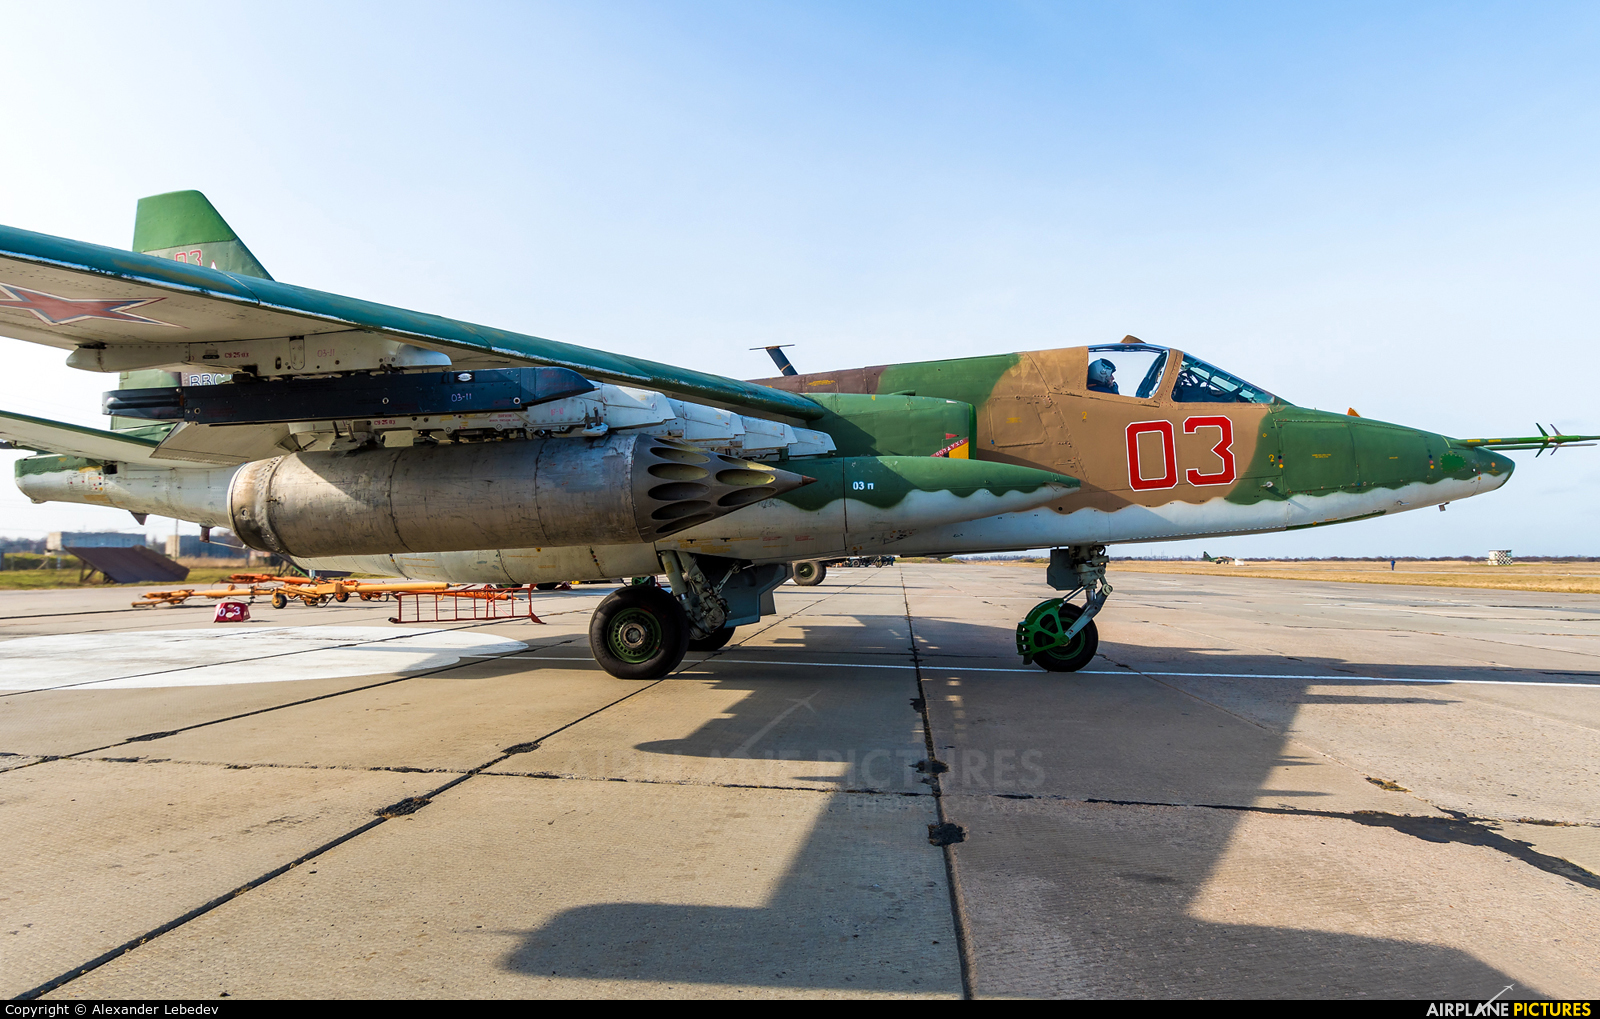 Russia - Air Force 03 aircraft at Primorsko-Akhtarsk